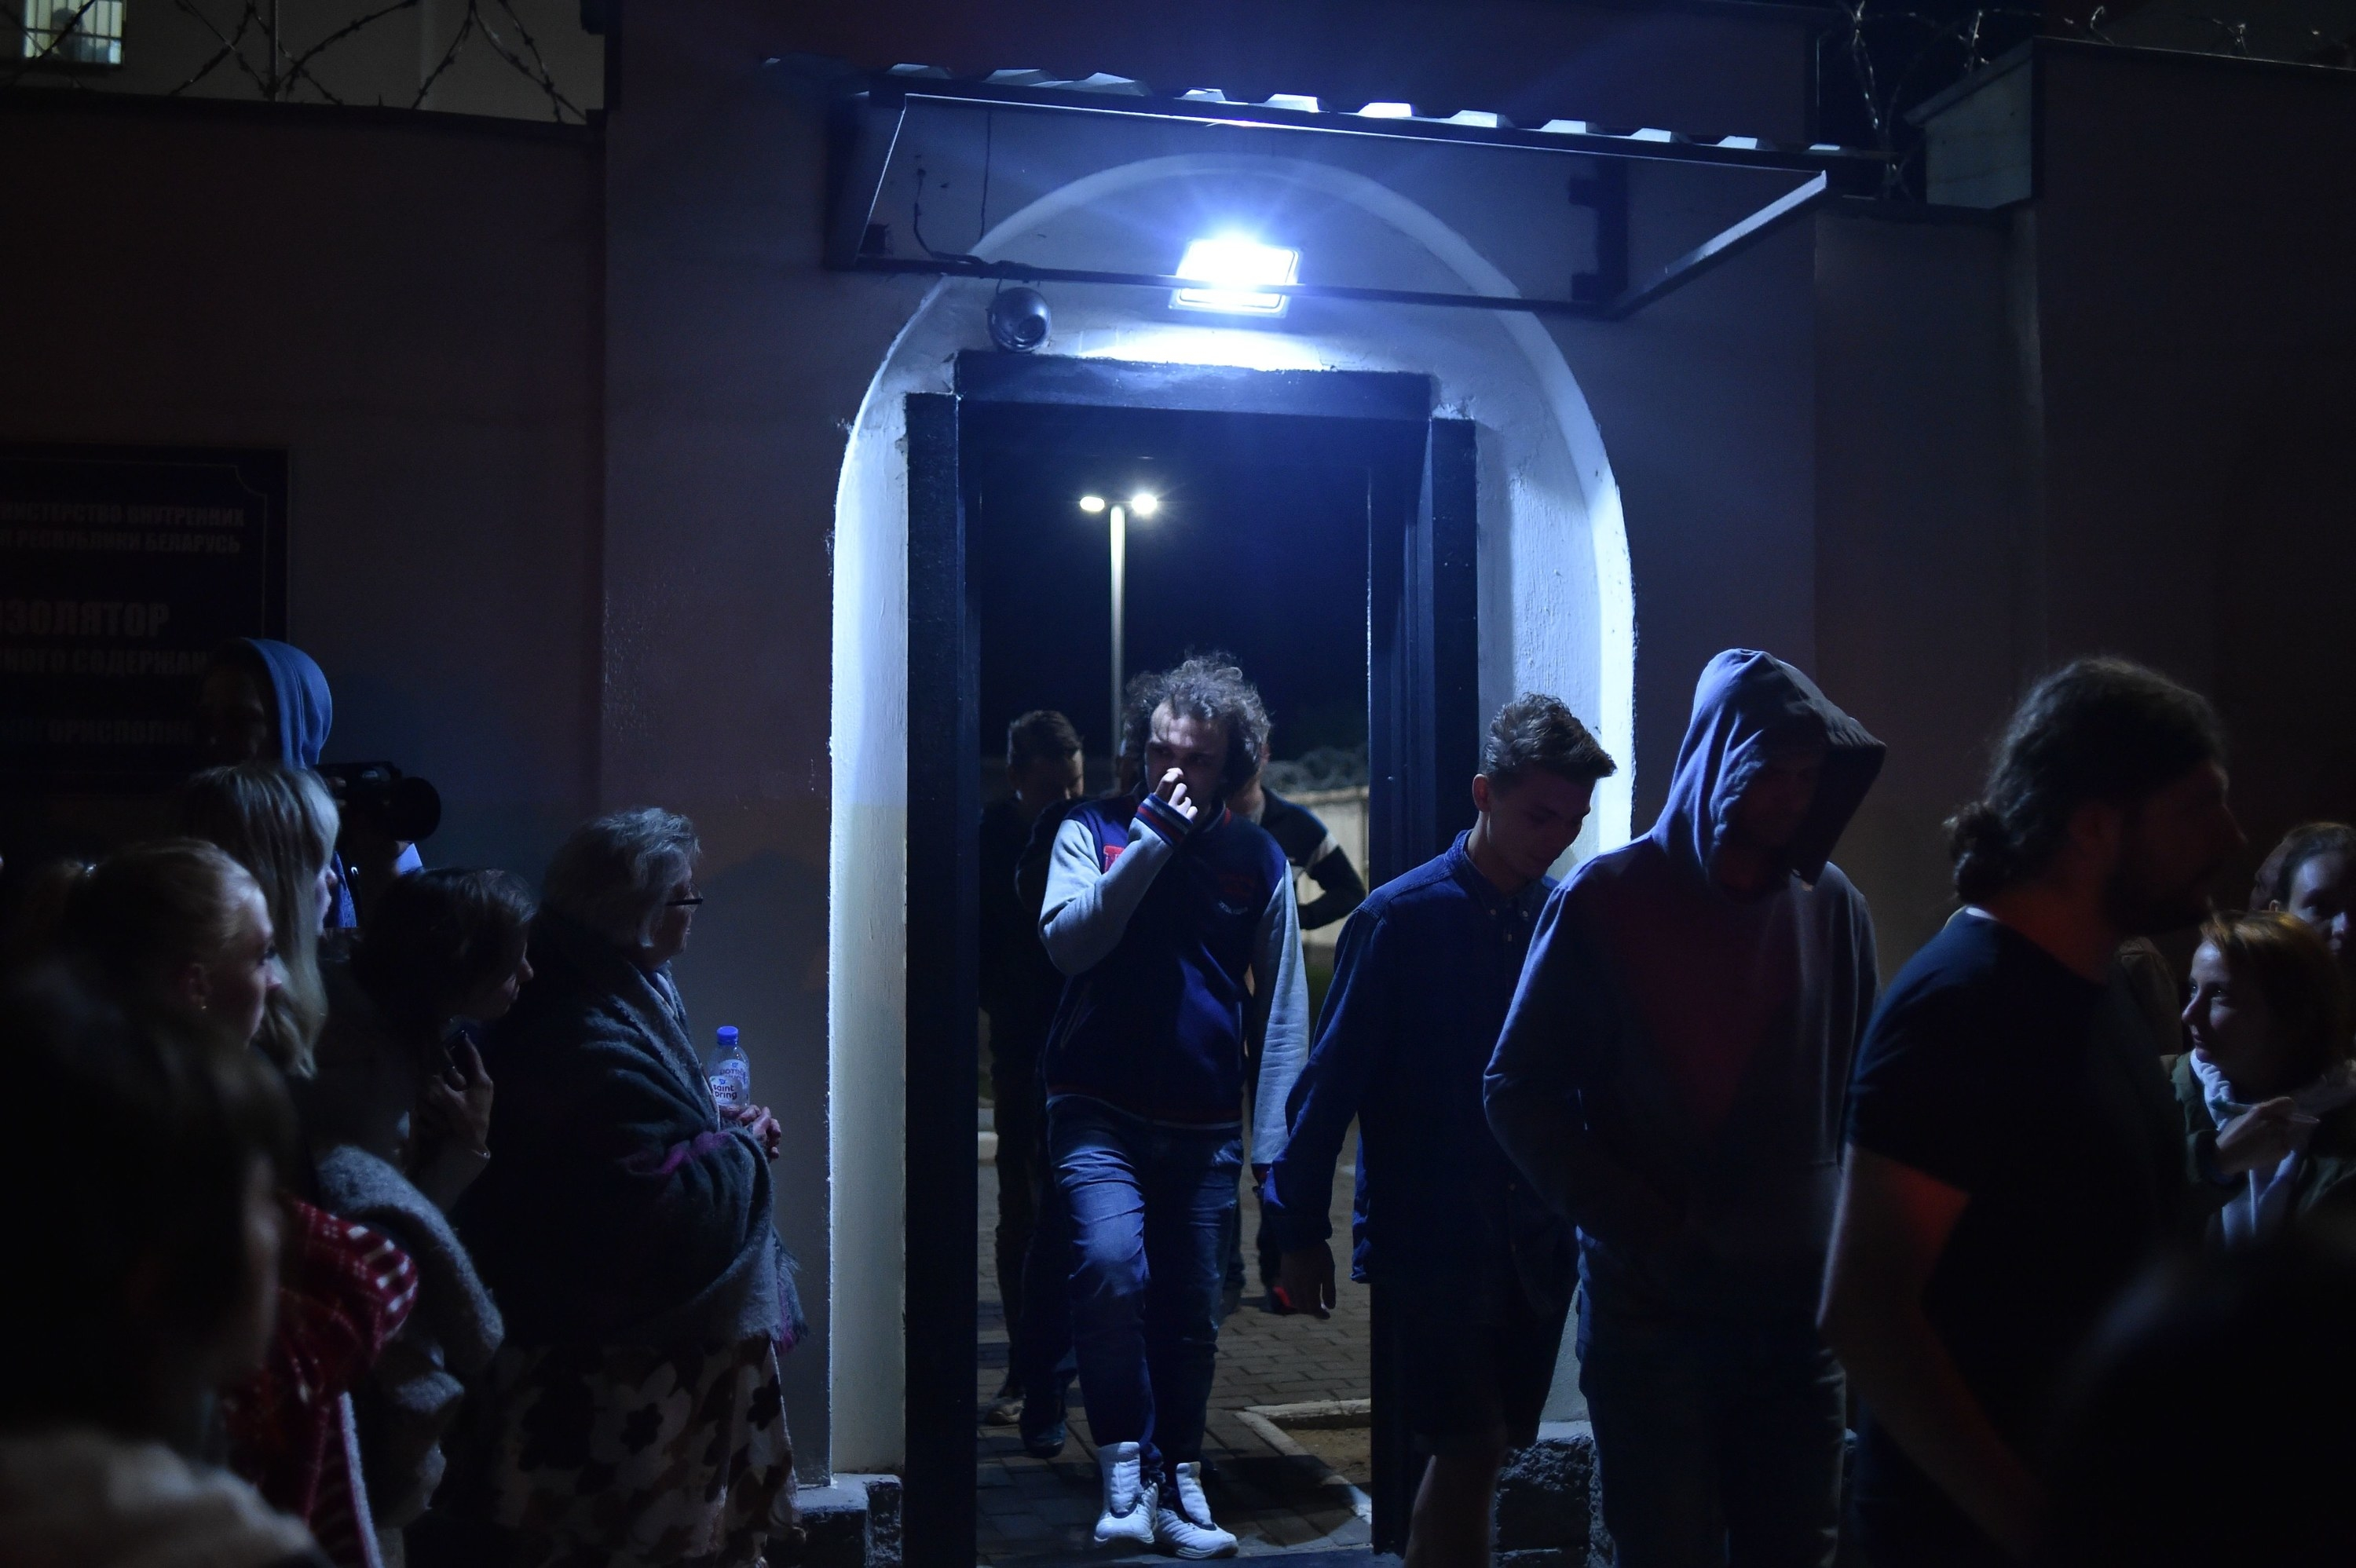 A line of people, many with their heads bowed, exit a prison doorway to crowds of people waiting outside